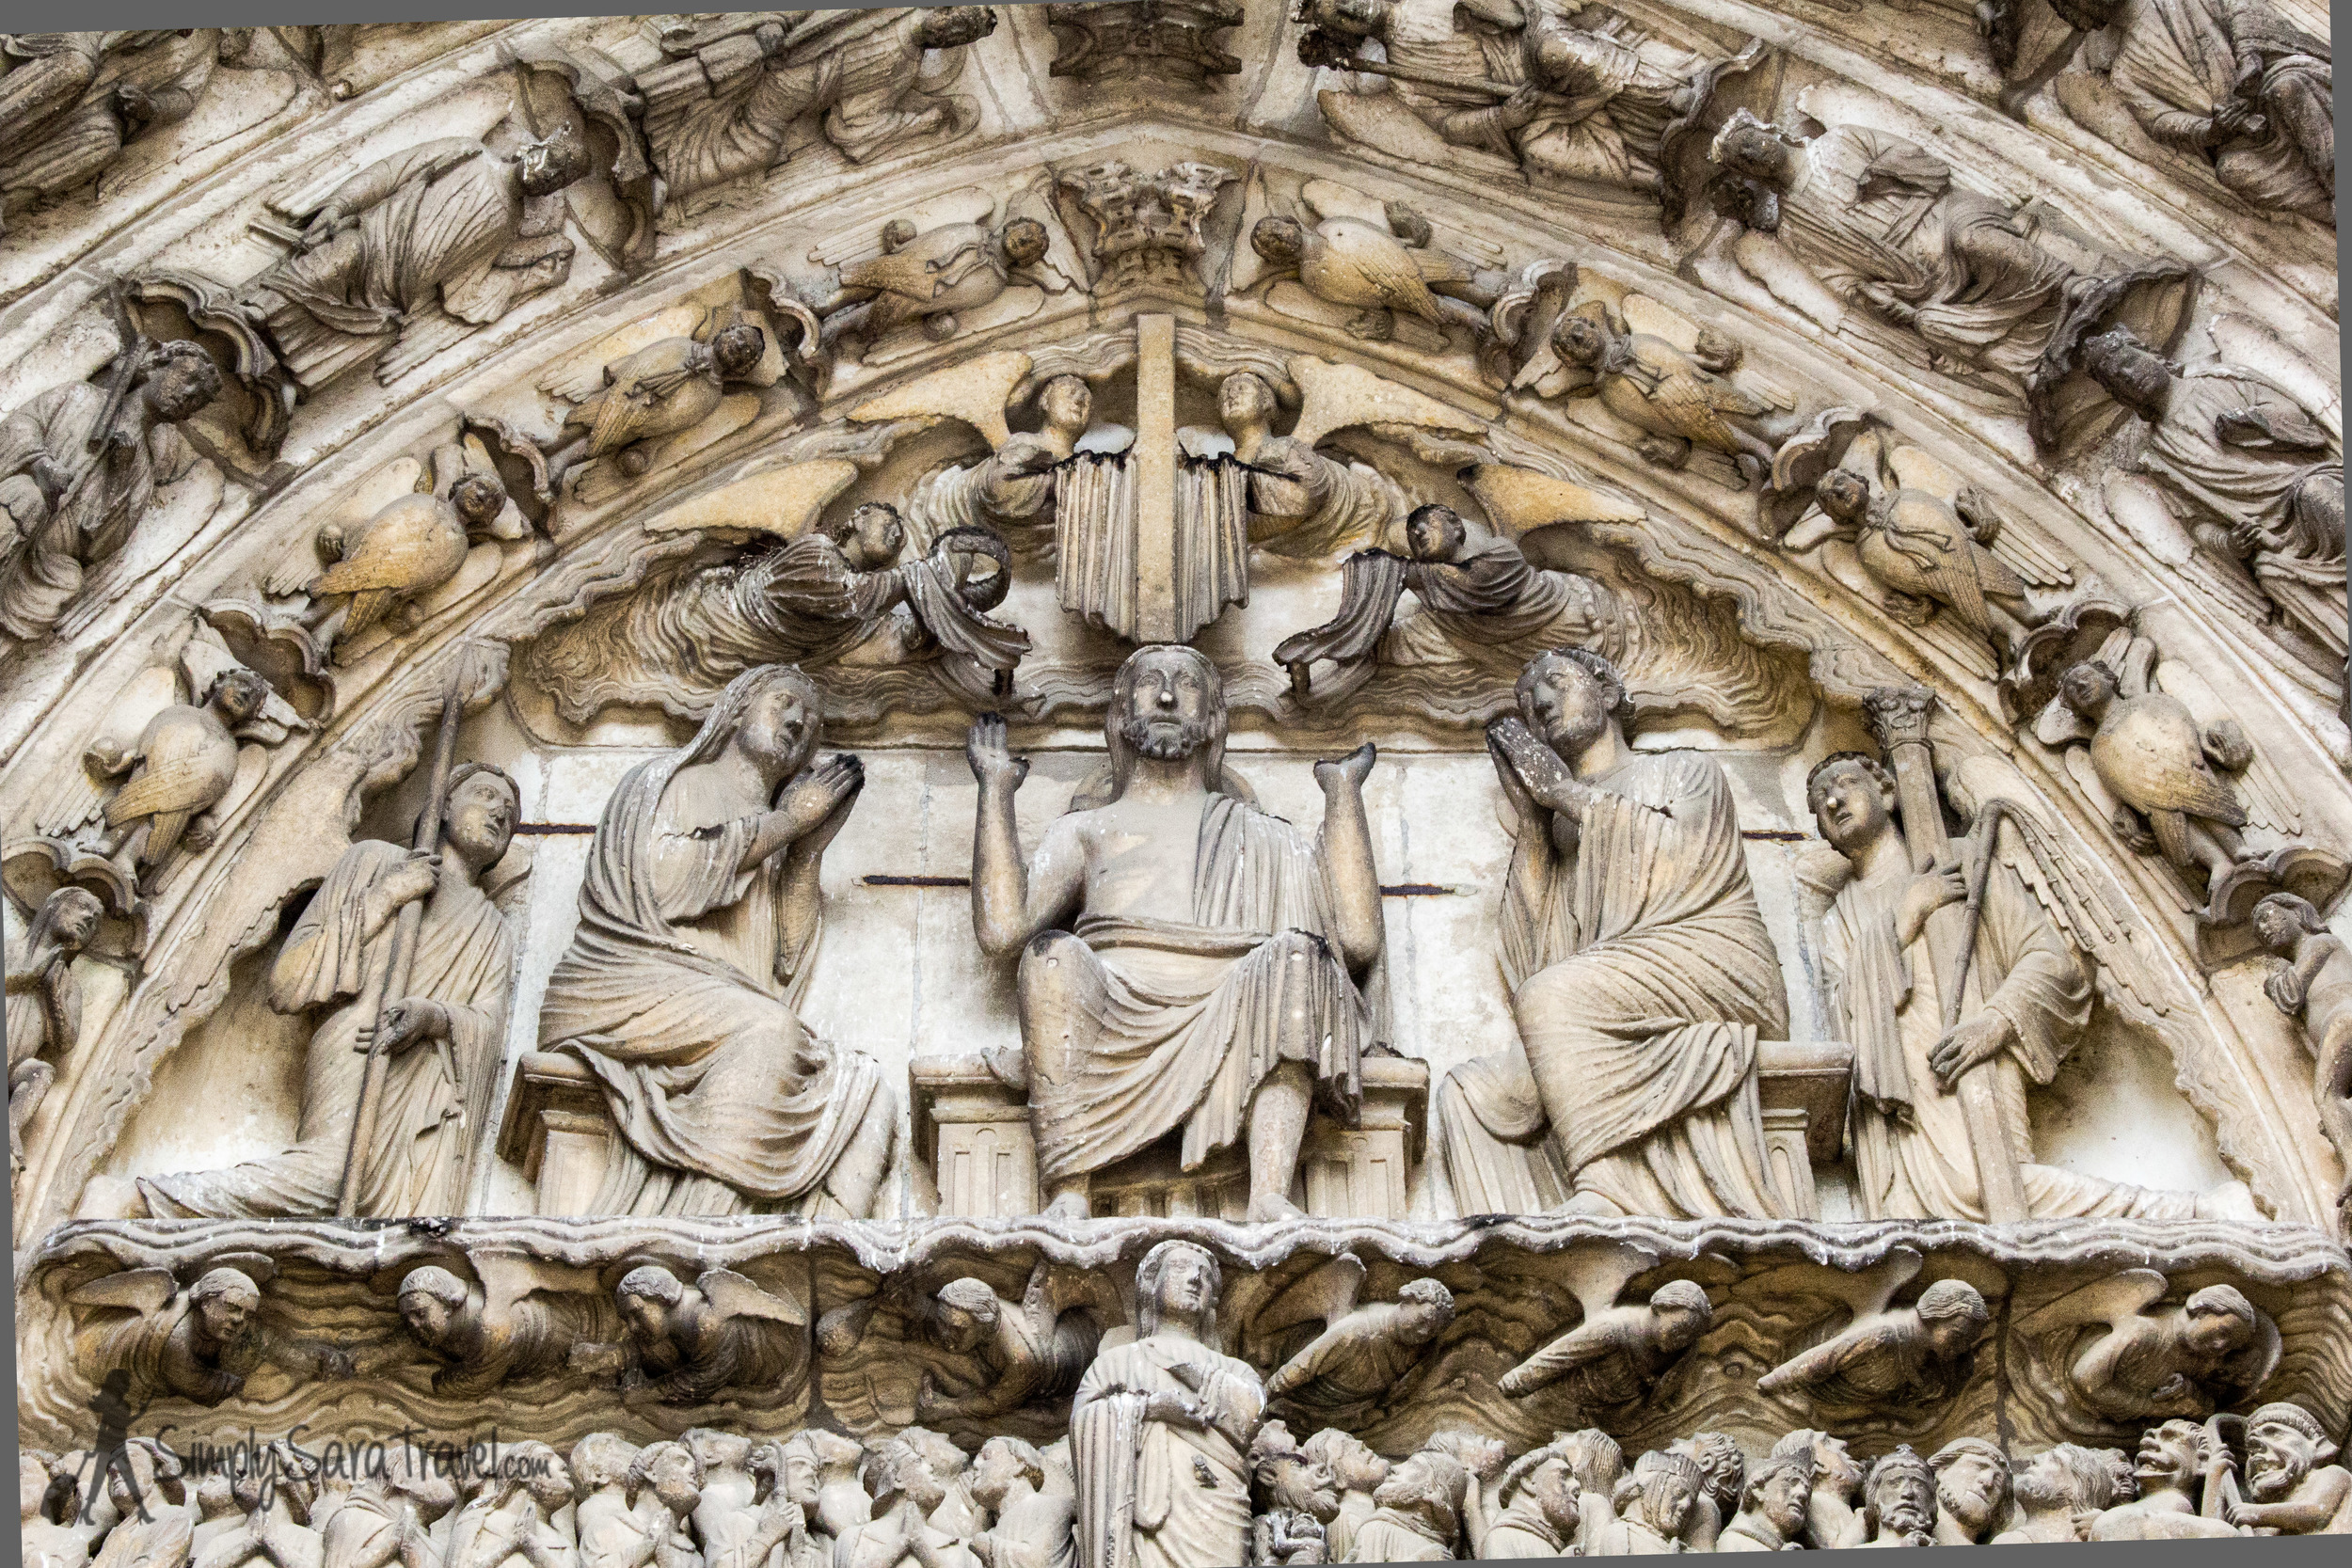 The central part of the South Porch, portraying the Last Judgement.